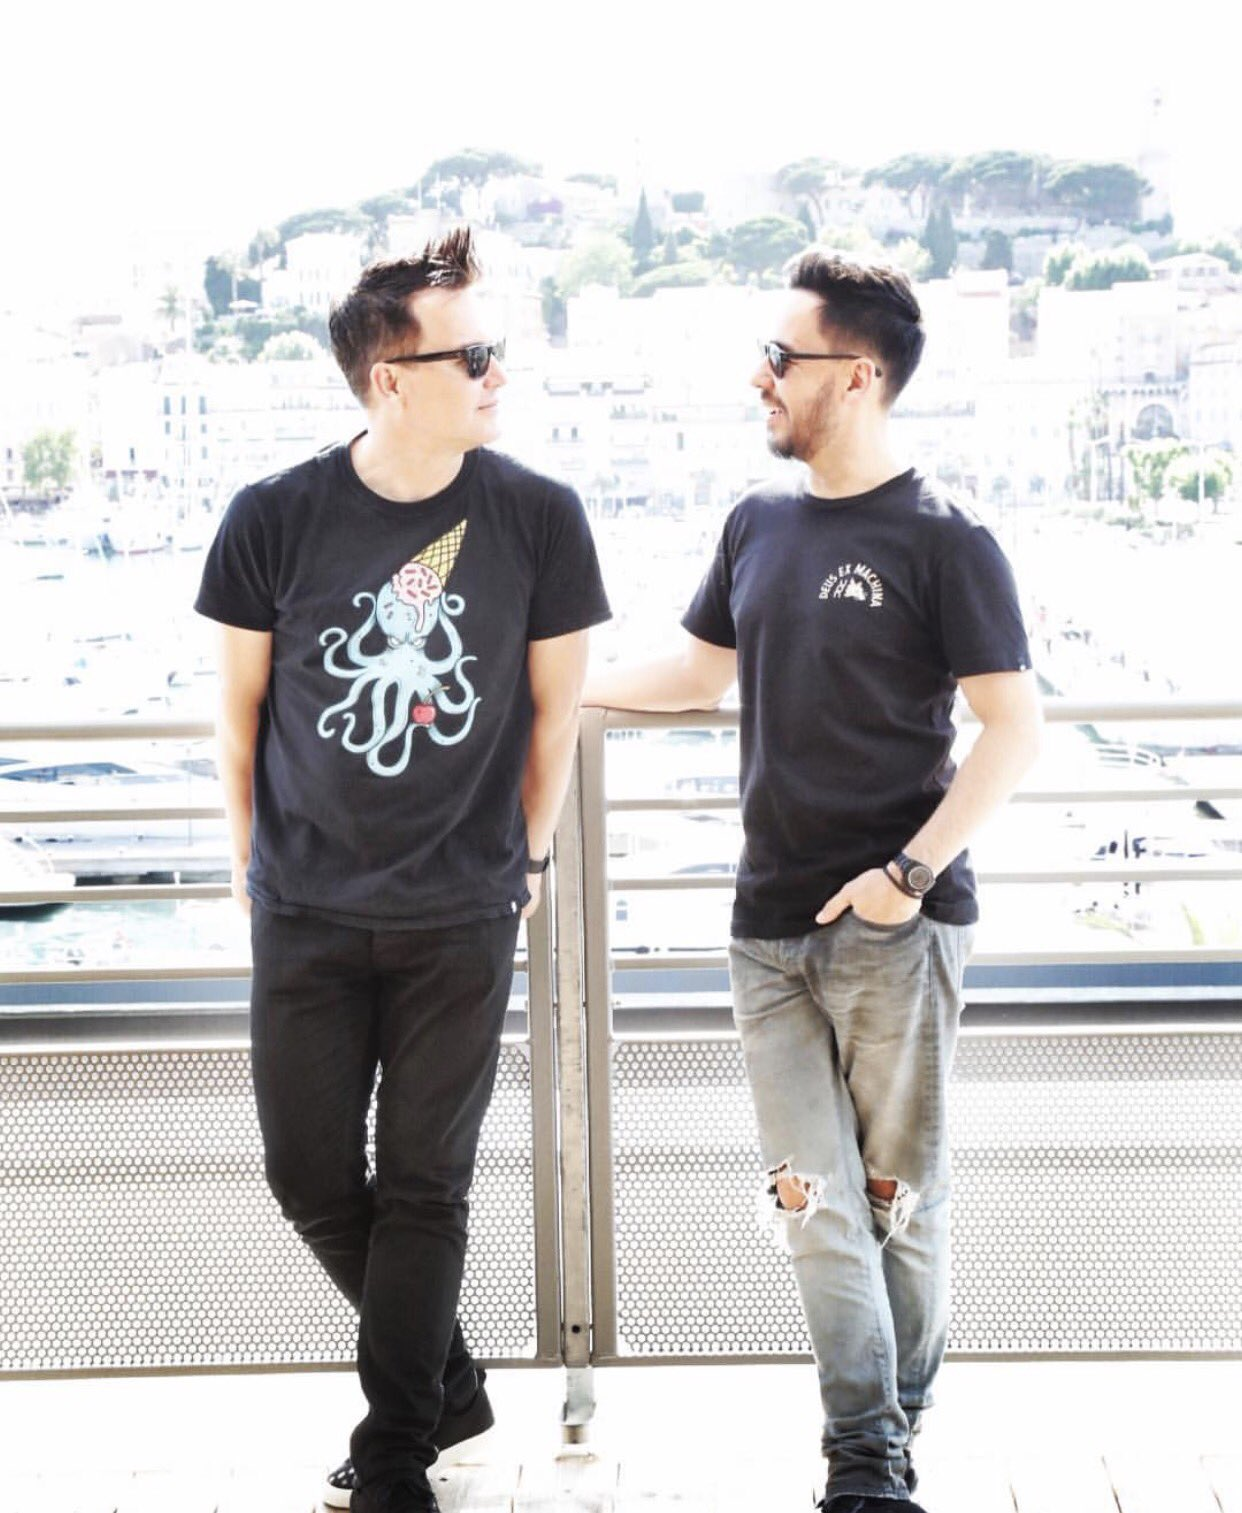 Summer vibes @mikeshinoda @markhoppus #midem https://t.co/1l3A0kCUUd